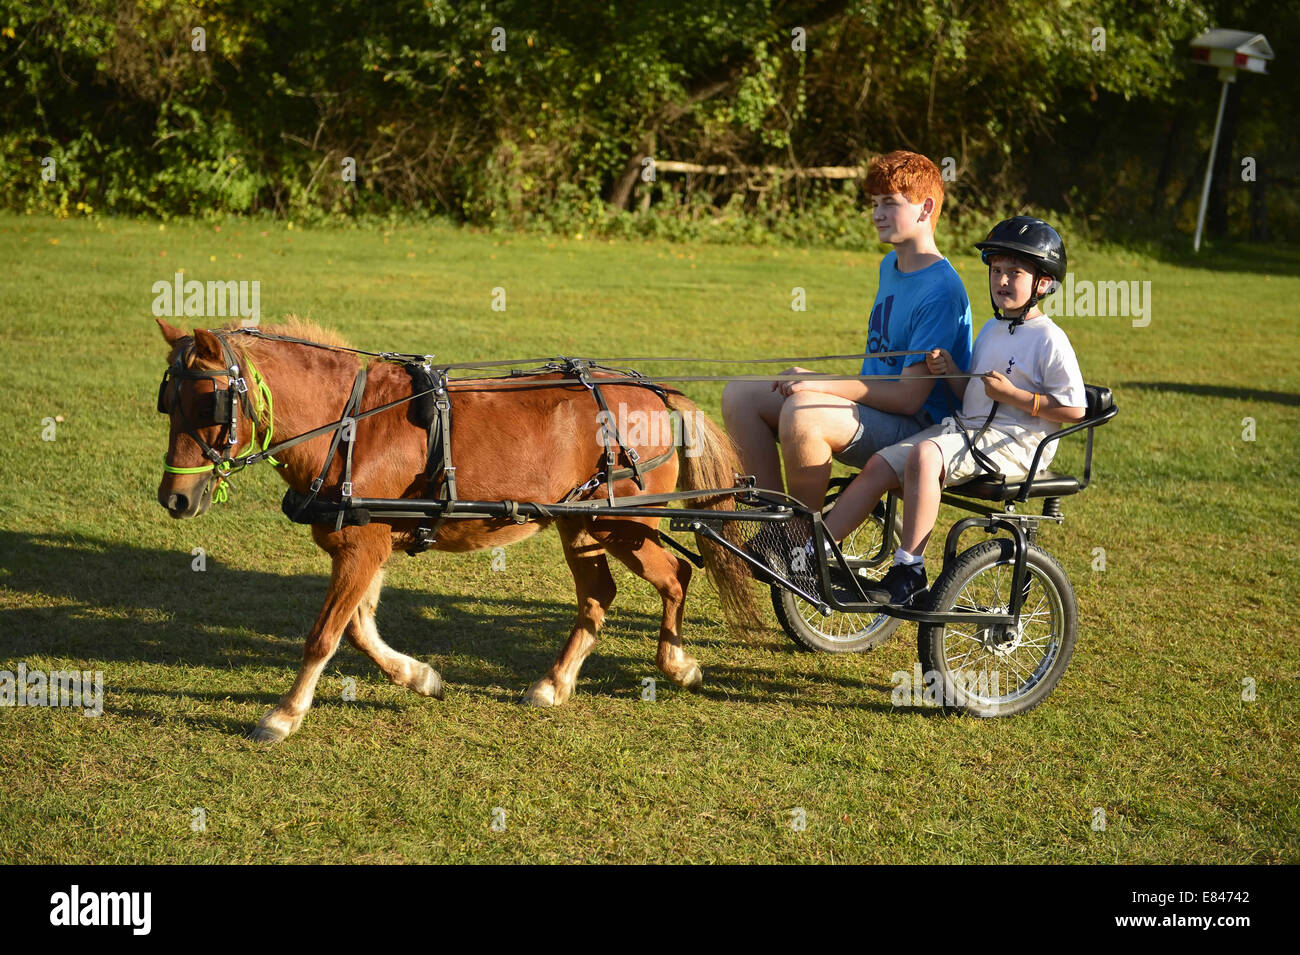 Old Bethpage, New York, USA. 28th Sep, 2014. Chef the miniature horse is pulling a small cart with two redhead boys, - Stock Image